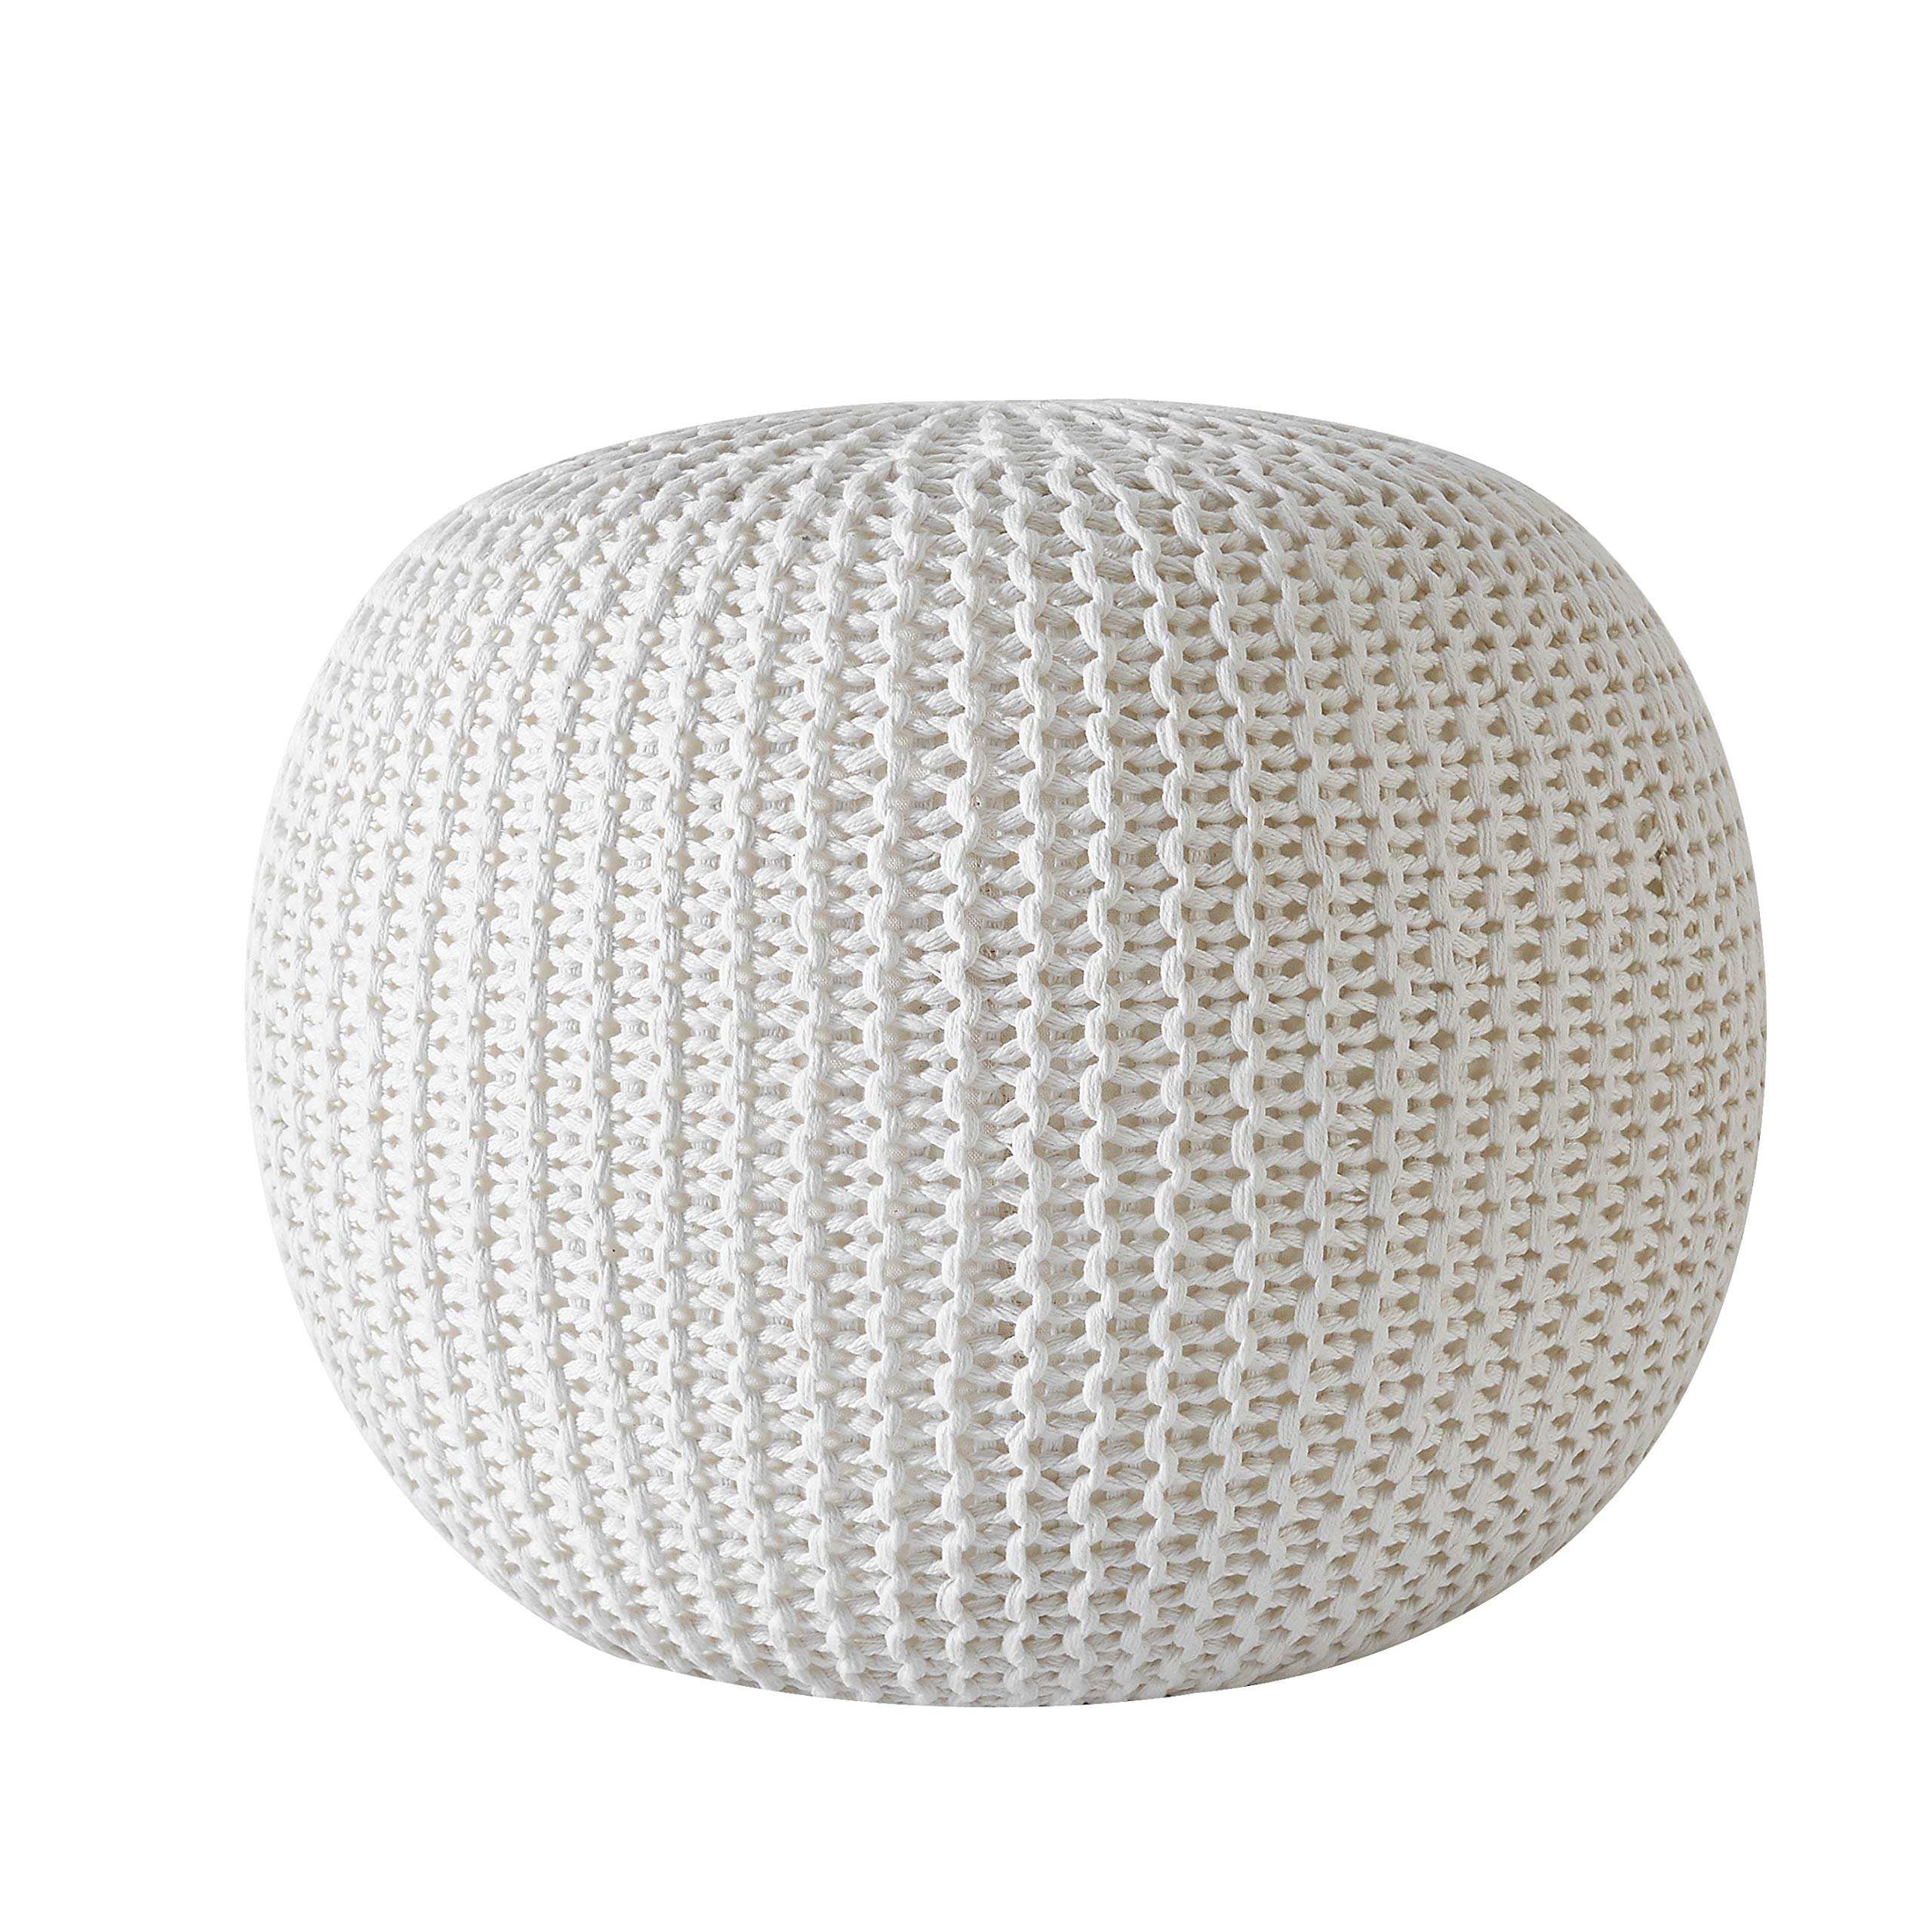 Urban Shop Round Knit Pouf - Hand Woven Cotton, Ivory by Urban Shop